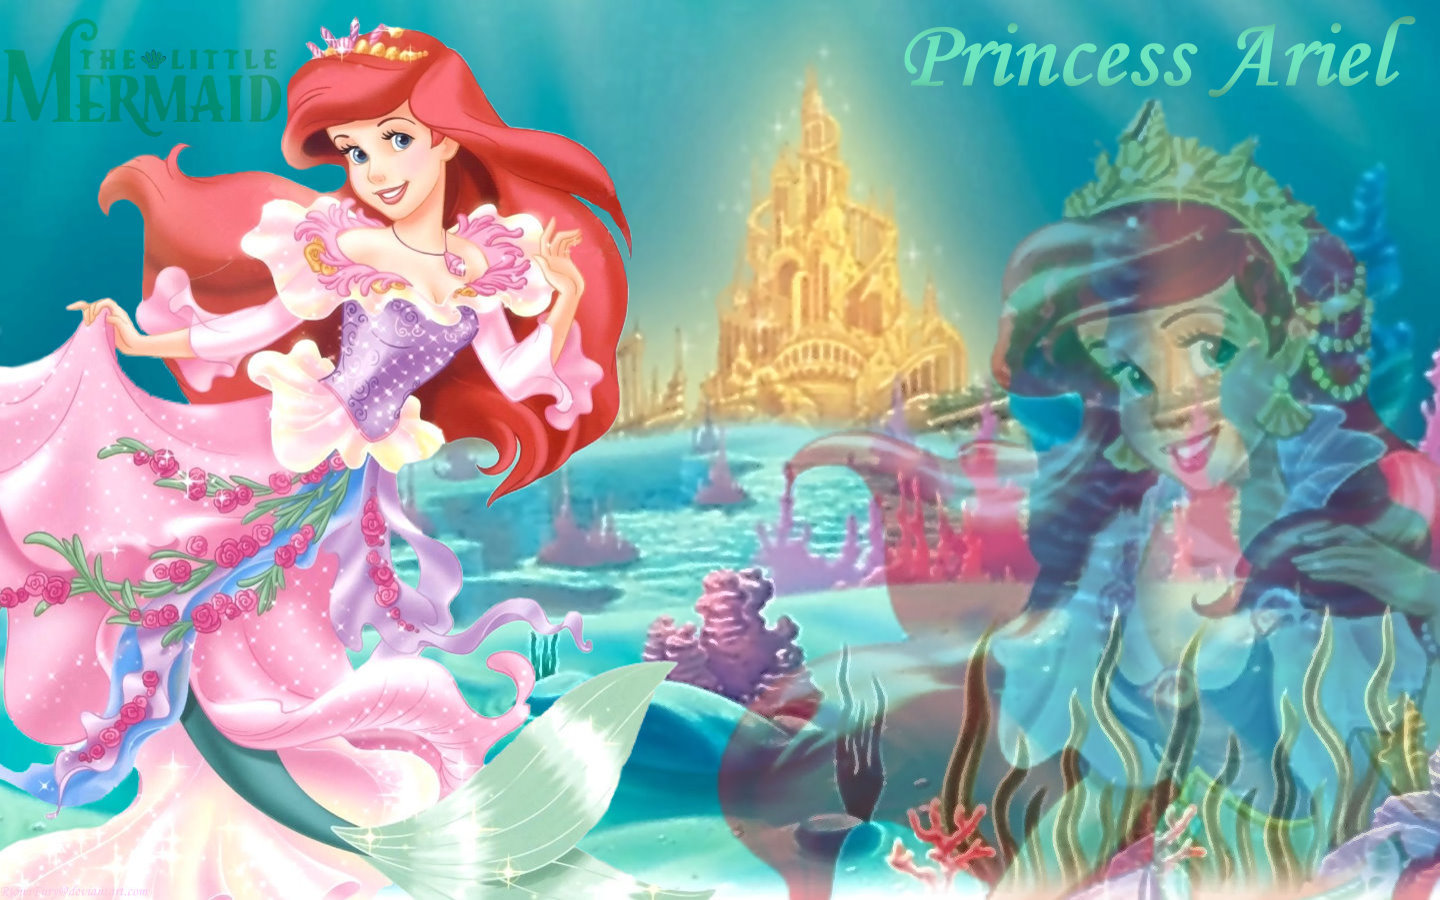 The little mermaid princess ariel